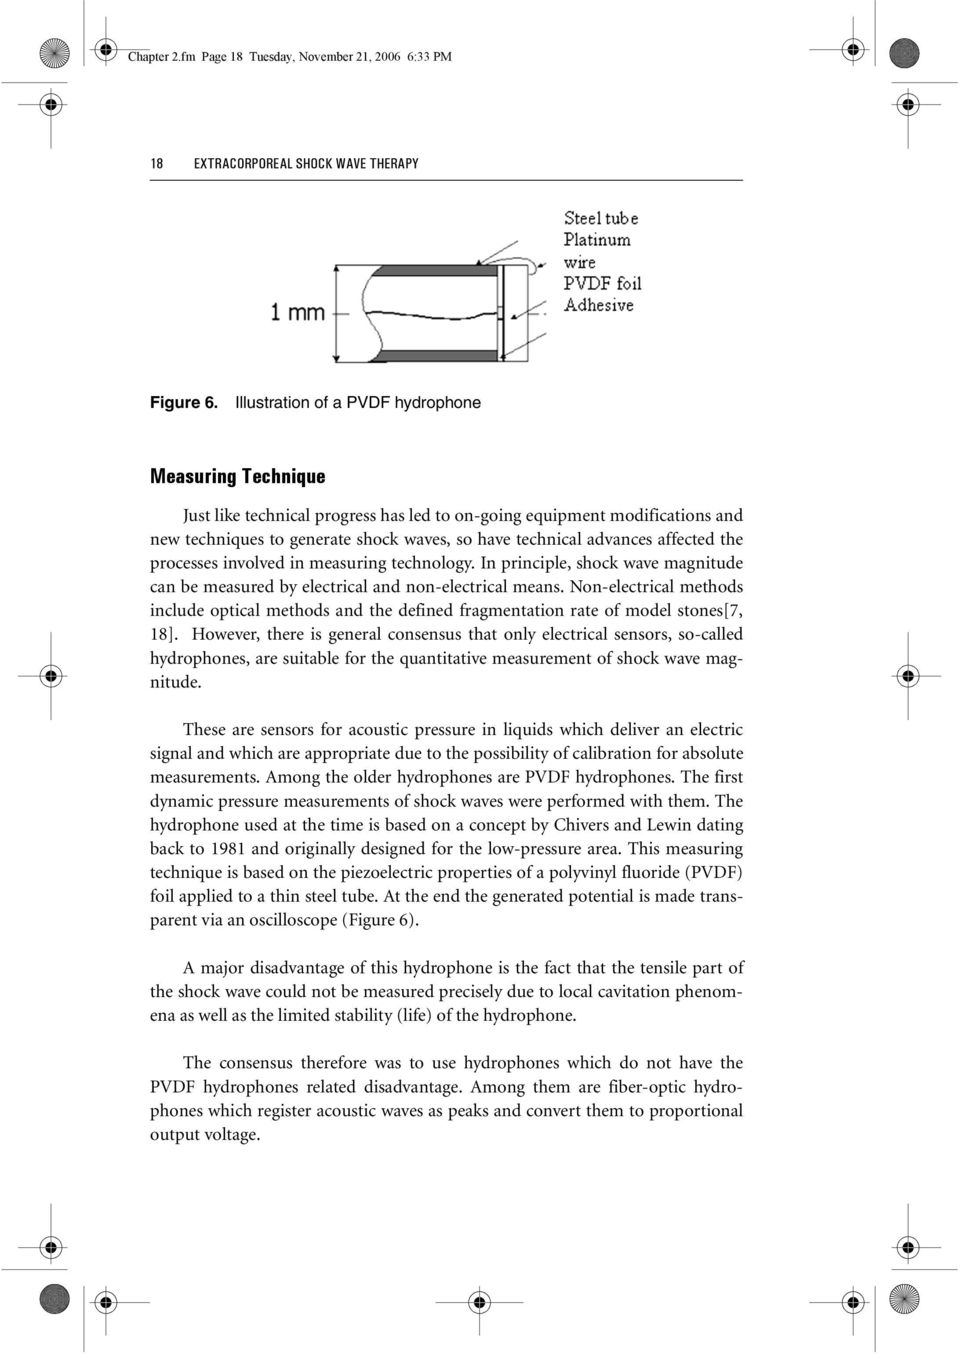 Physical Principles And Generation Of Shock Waves Pdf The Free Body Diagrams For Wave Would Look Likethese Affected Processes Involved In Measuring Technology Principle Magnitude Can Be